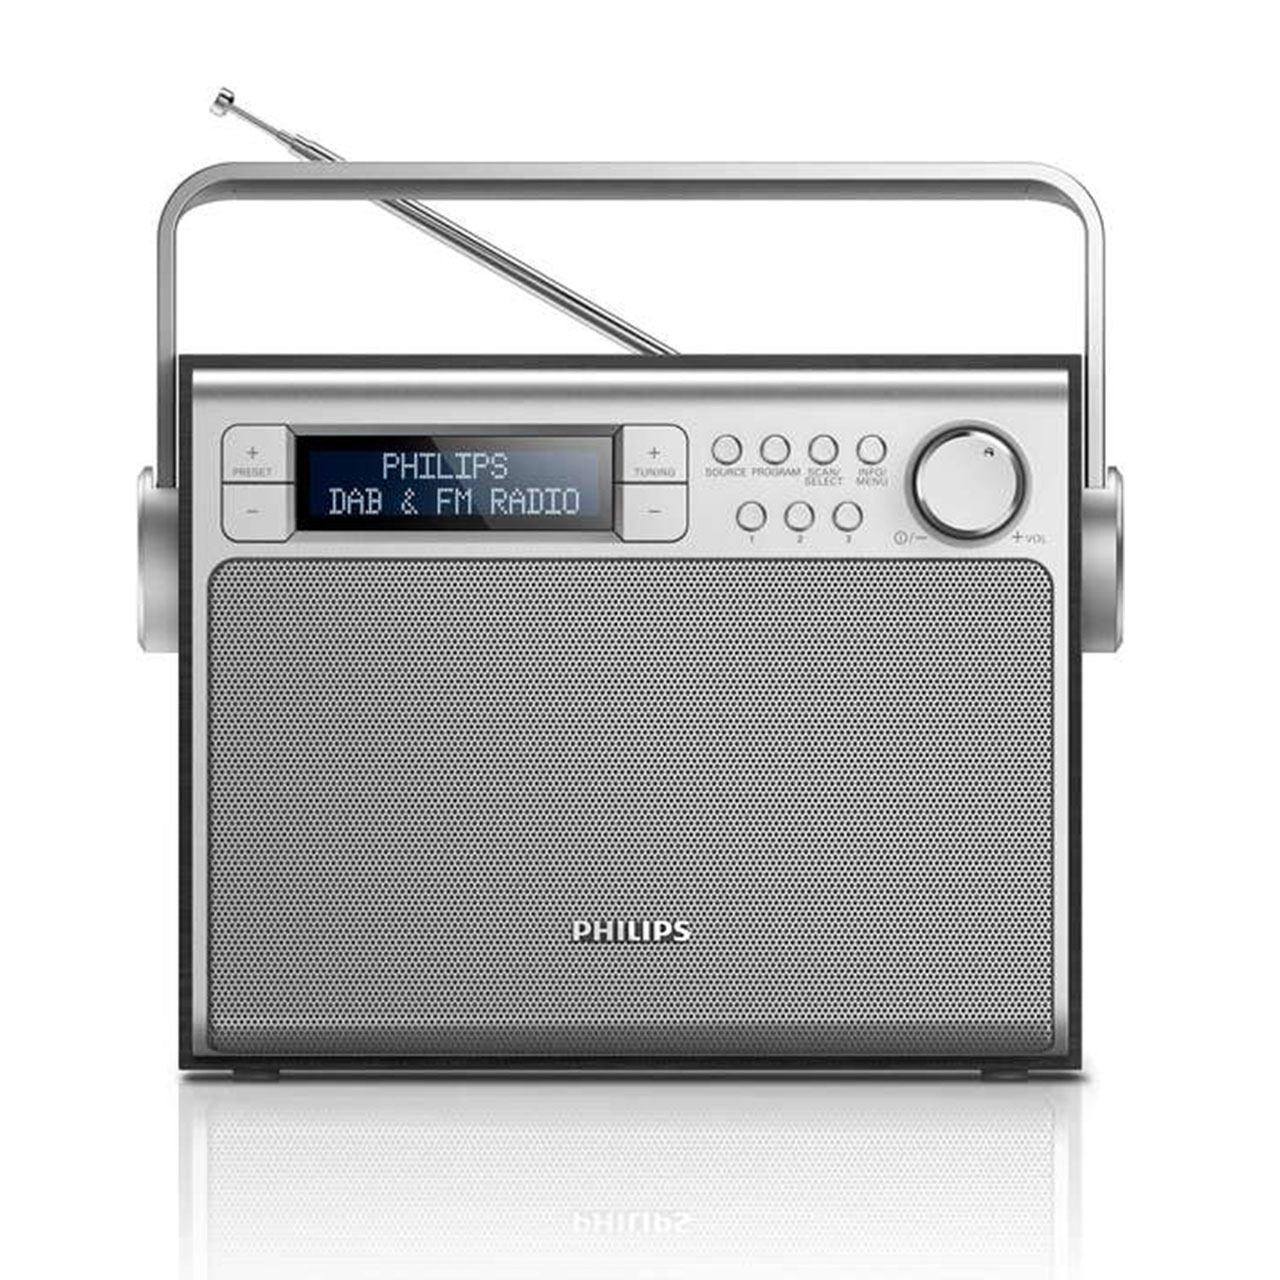 philips portable radio black rh desktopideas com Philips Clock Radio AJ 35006 Philips Radio B3x88u